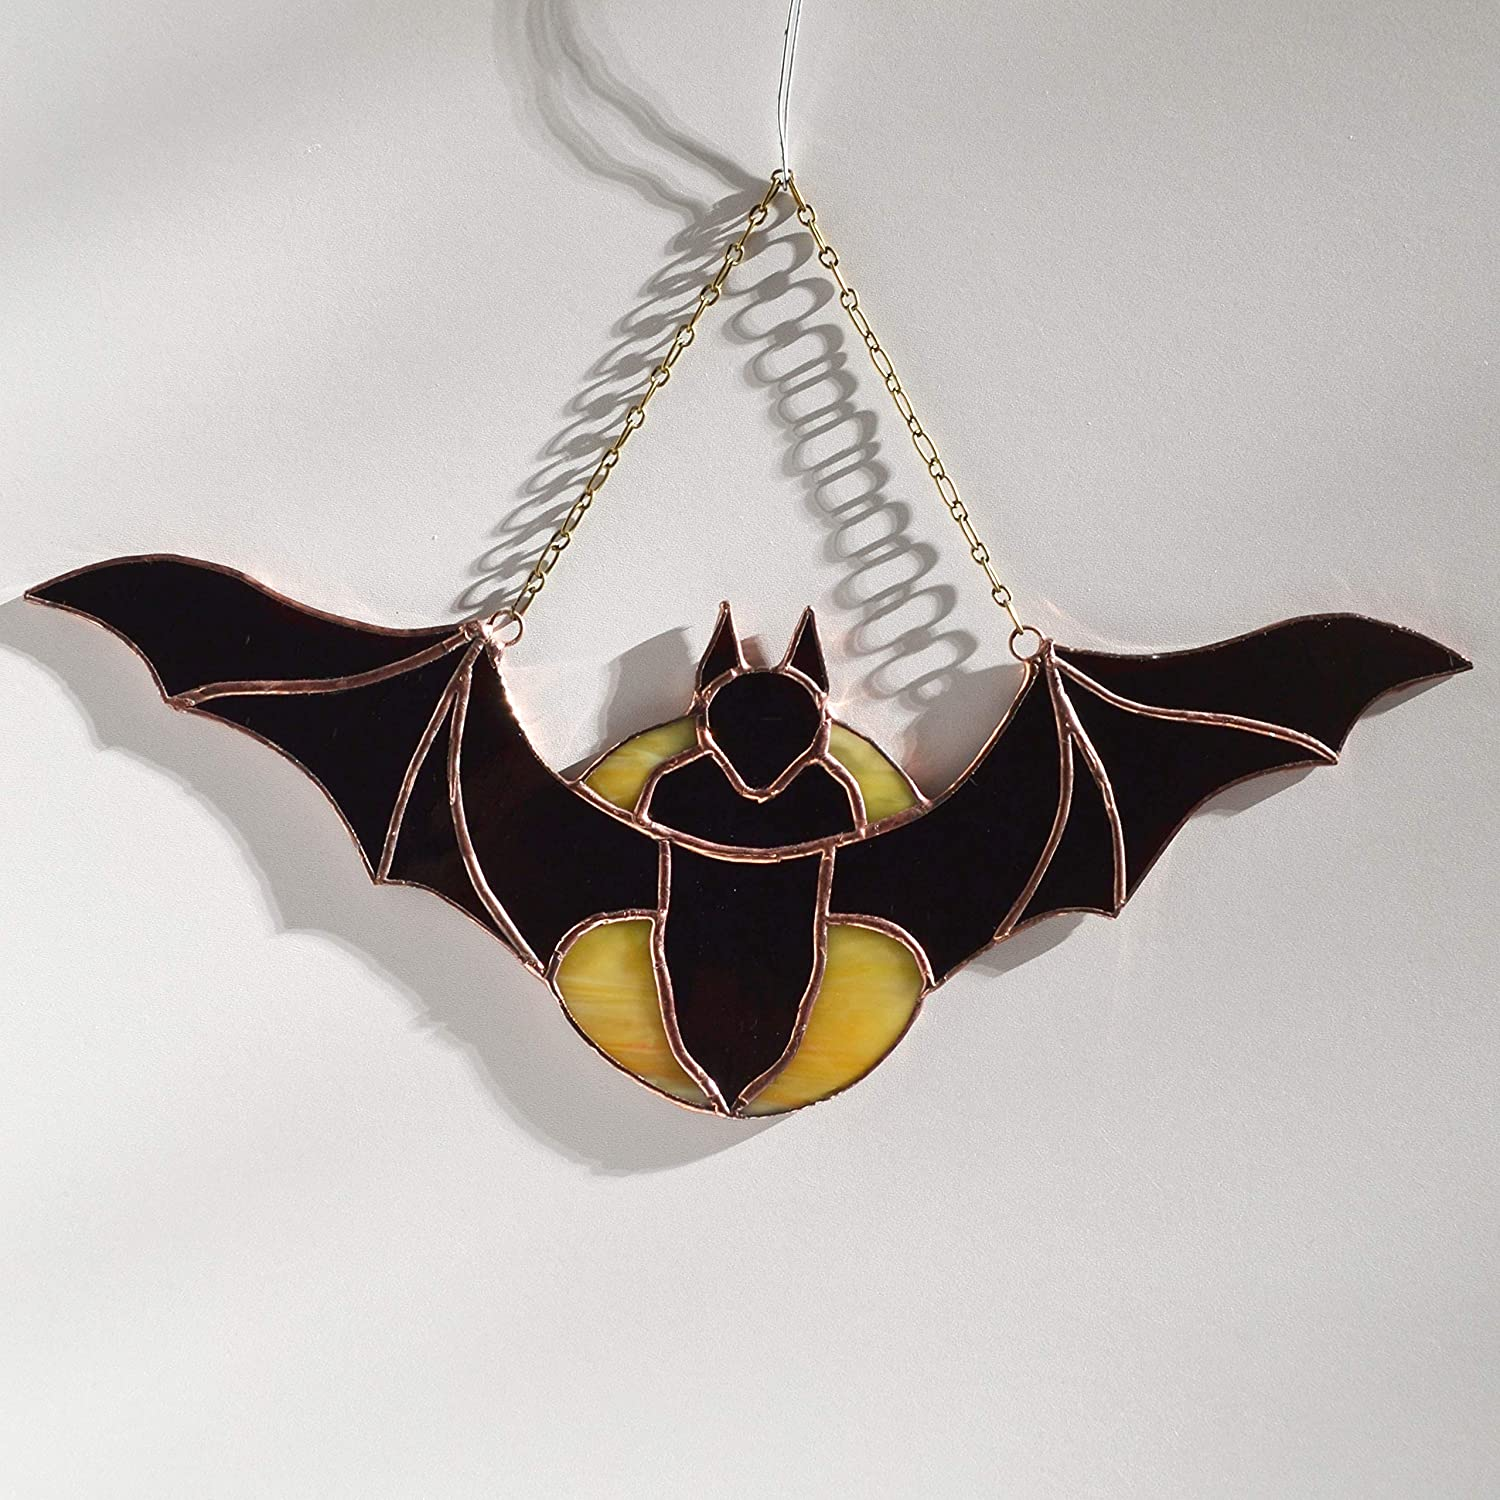 Stained Glass Flying Bat over Moon Panel for Window Hanging or Wall Decor Halloween Decor Scary